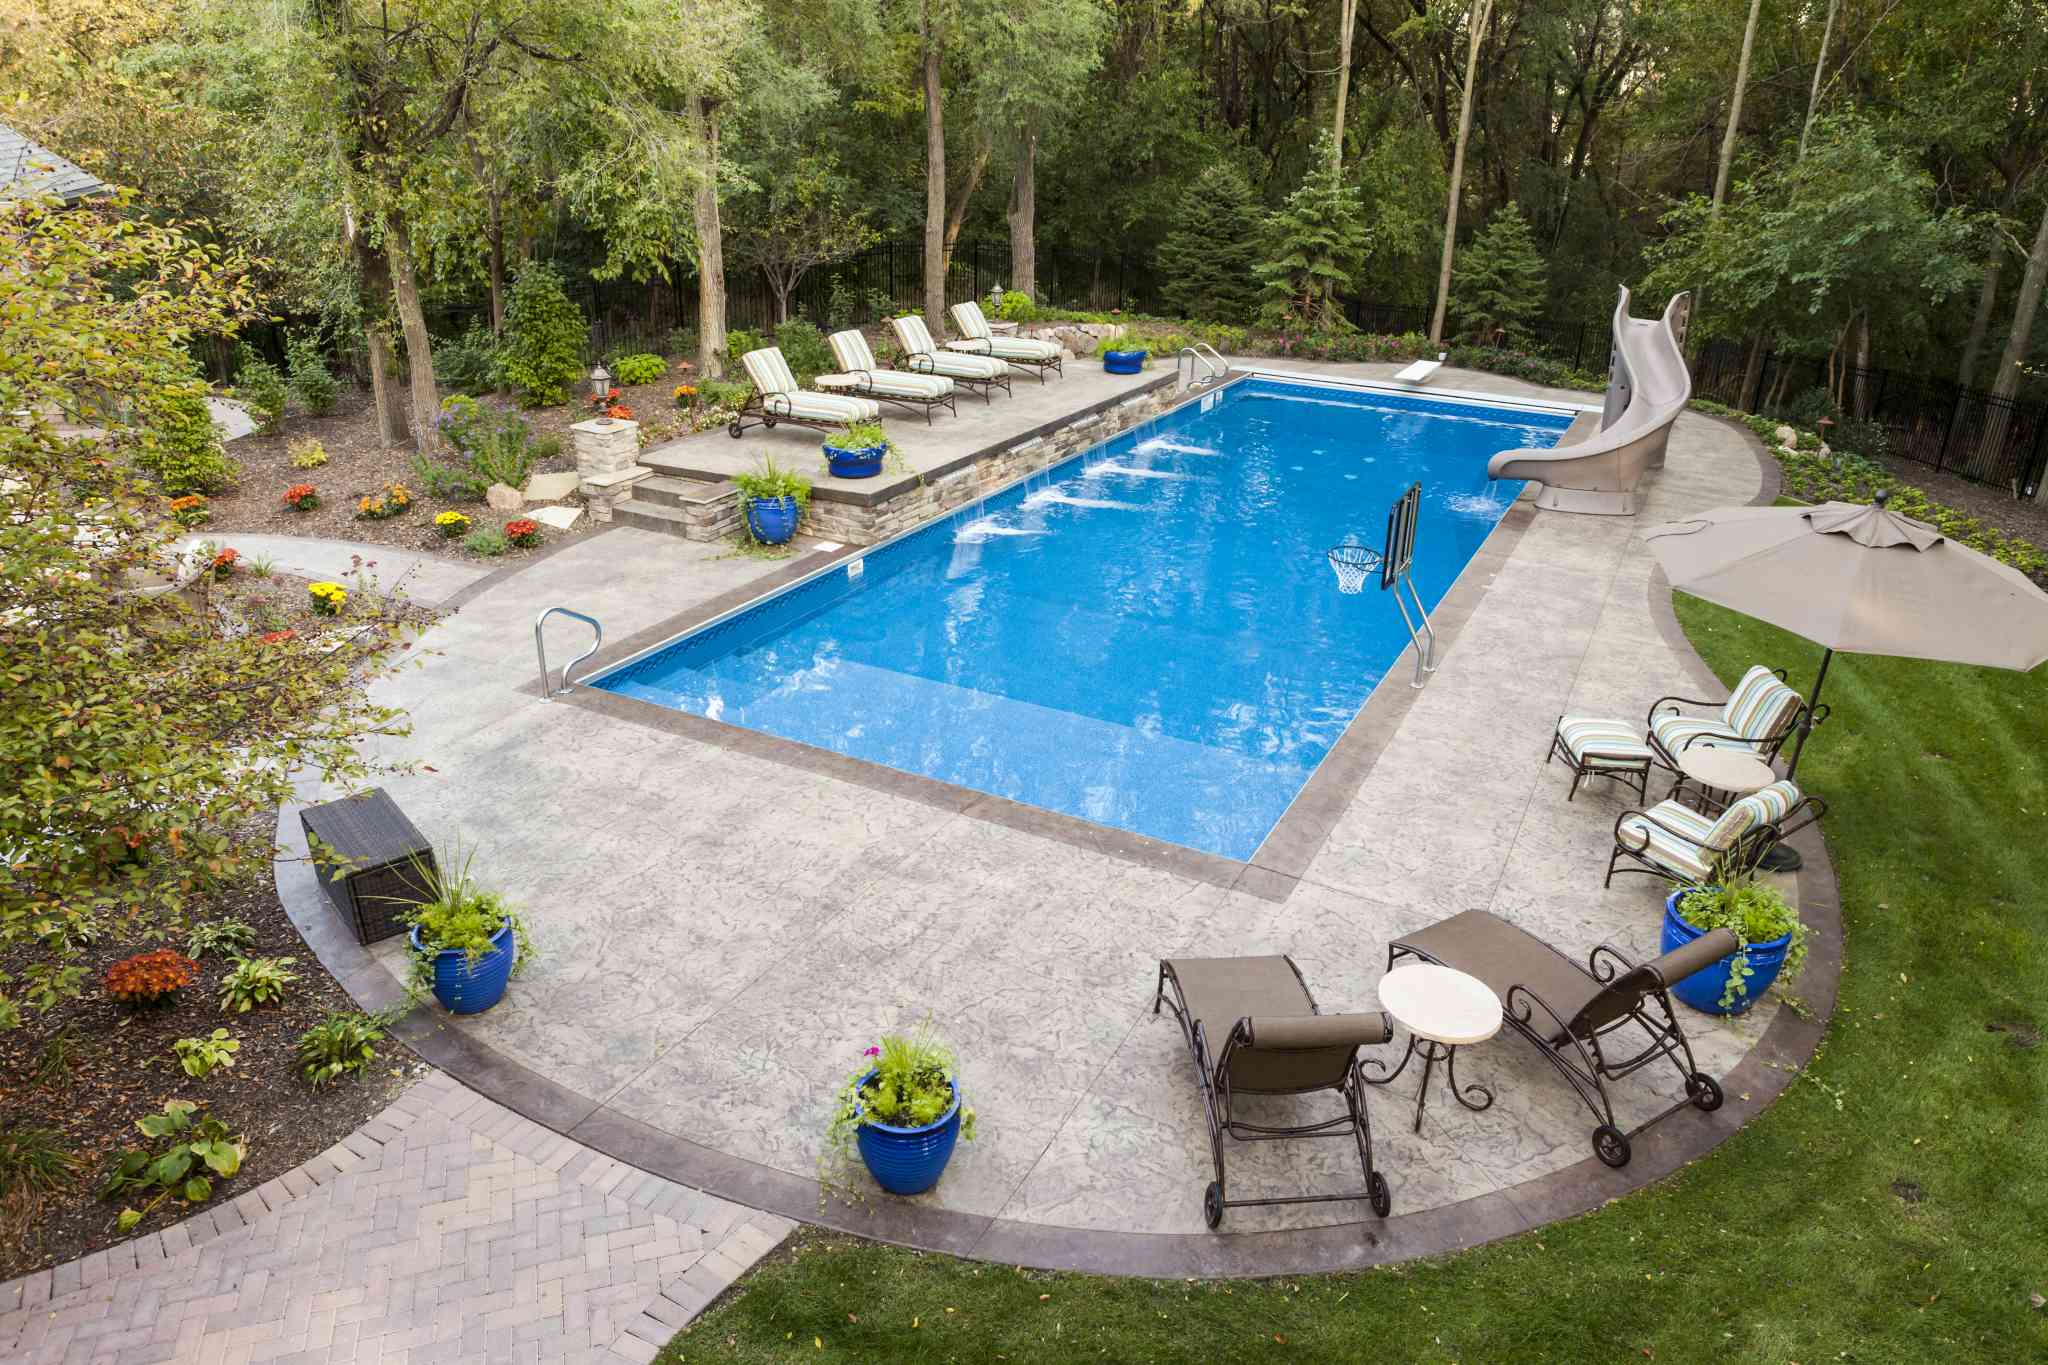 What to Consider When Building an Inground Pool